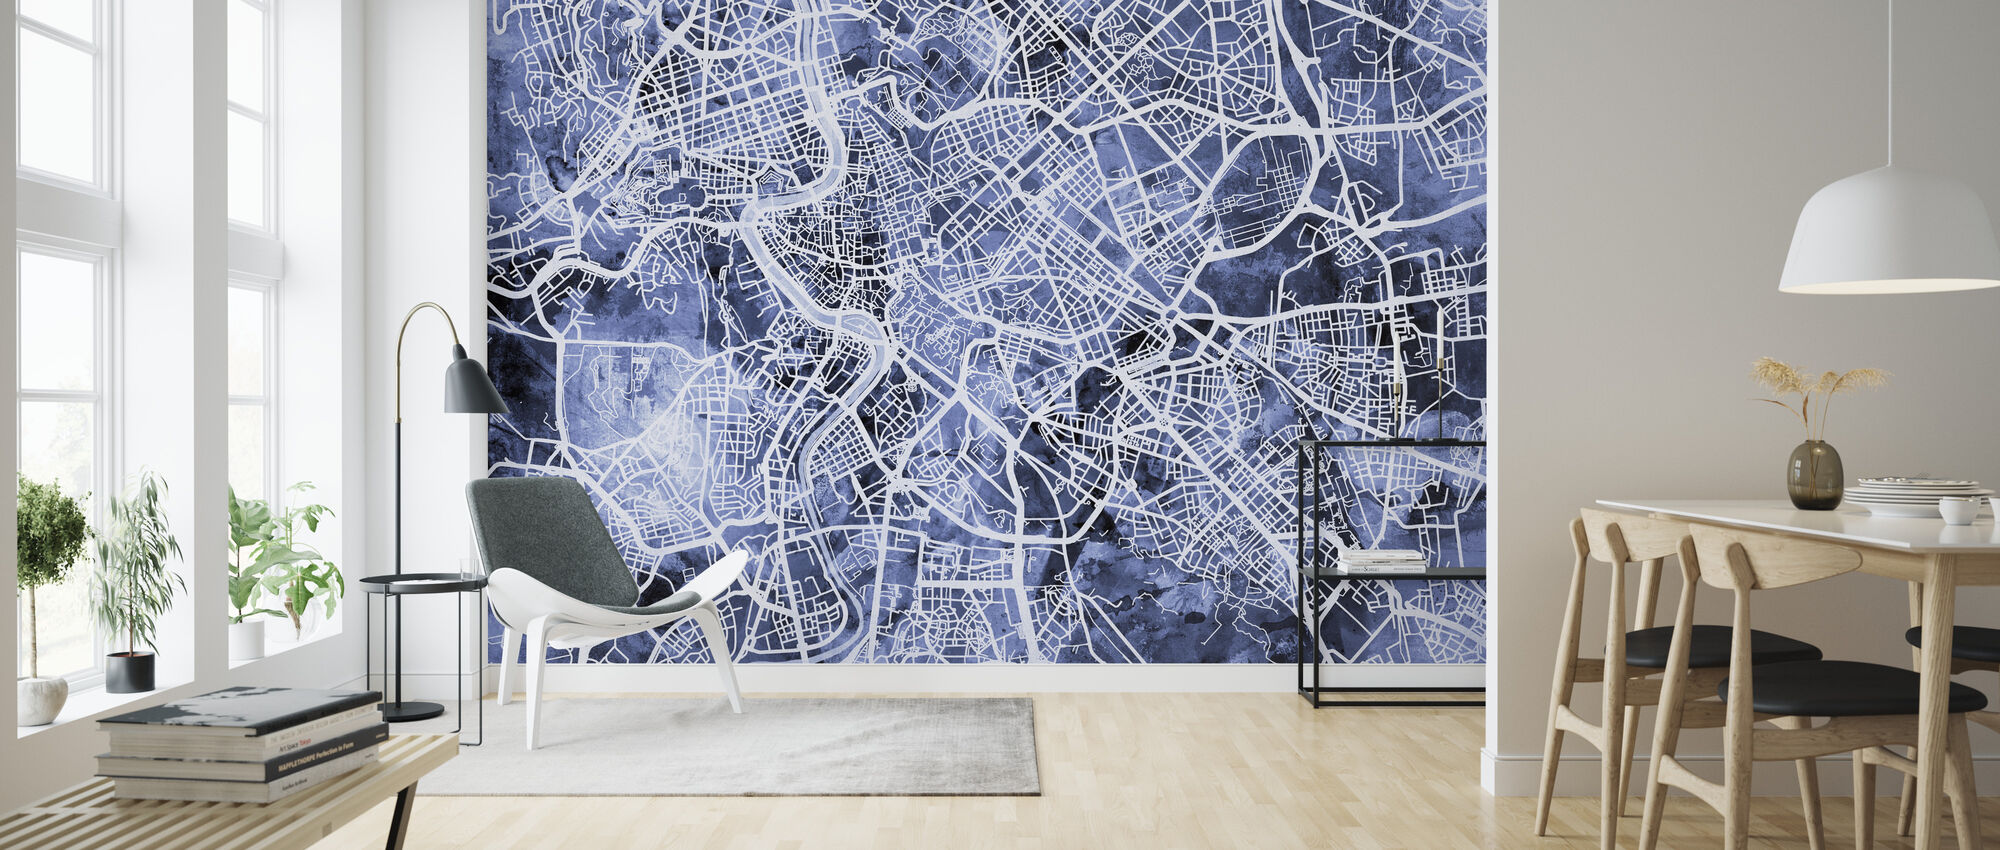 Rome Italy City Street Map - Wallpaper - Living Room